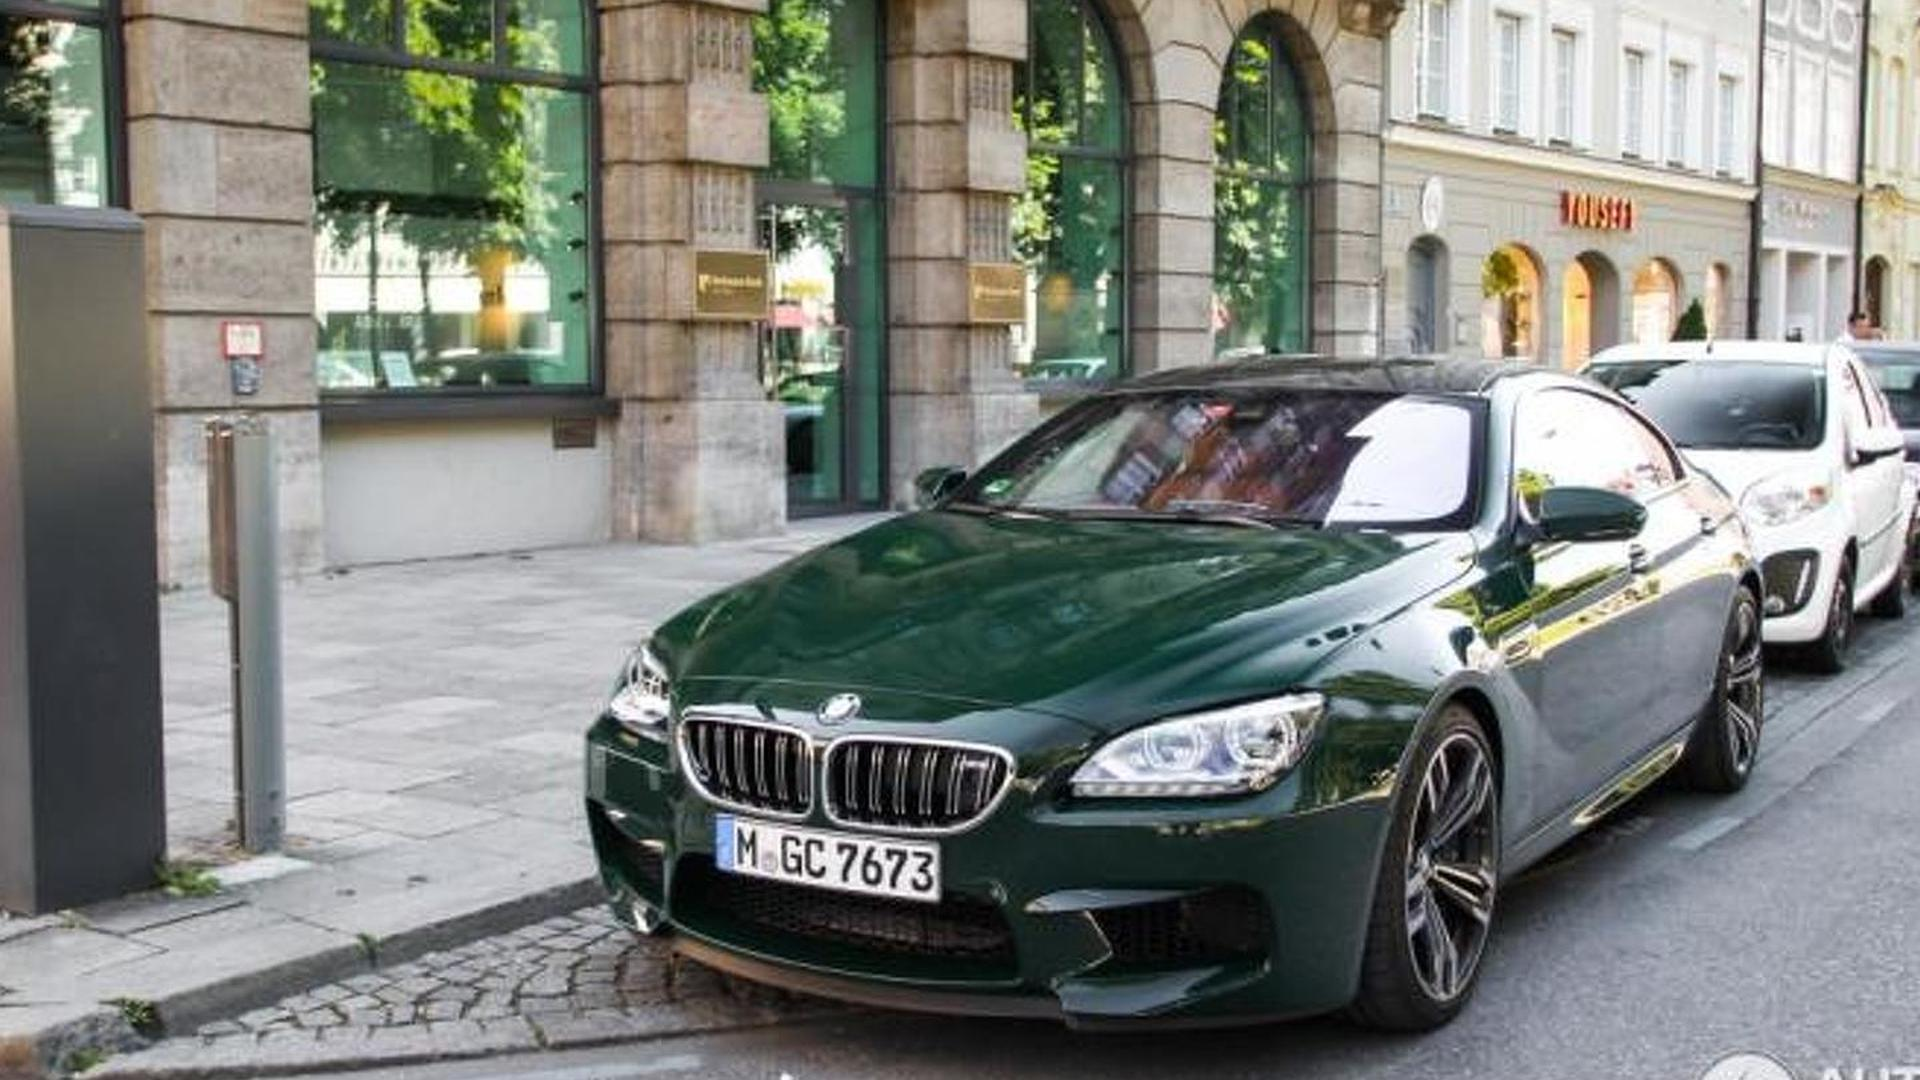 BMW M6 Gran Coupe with green paint is a rare sight